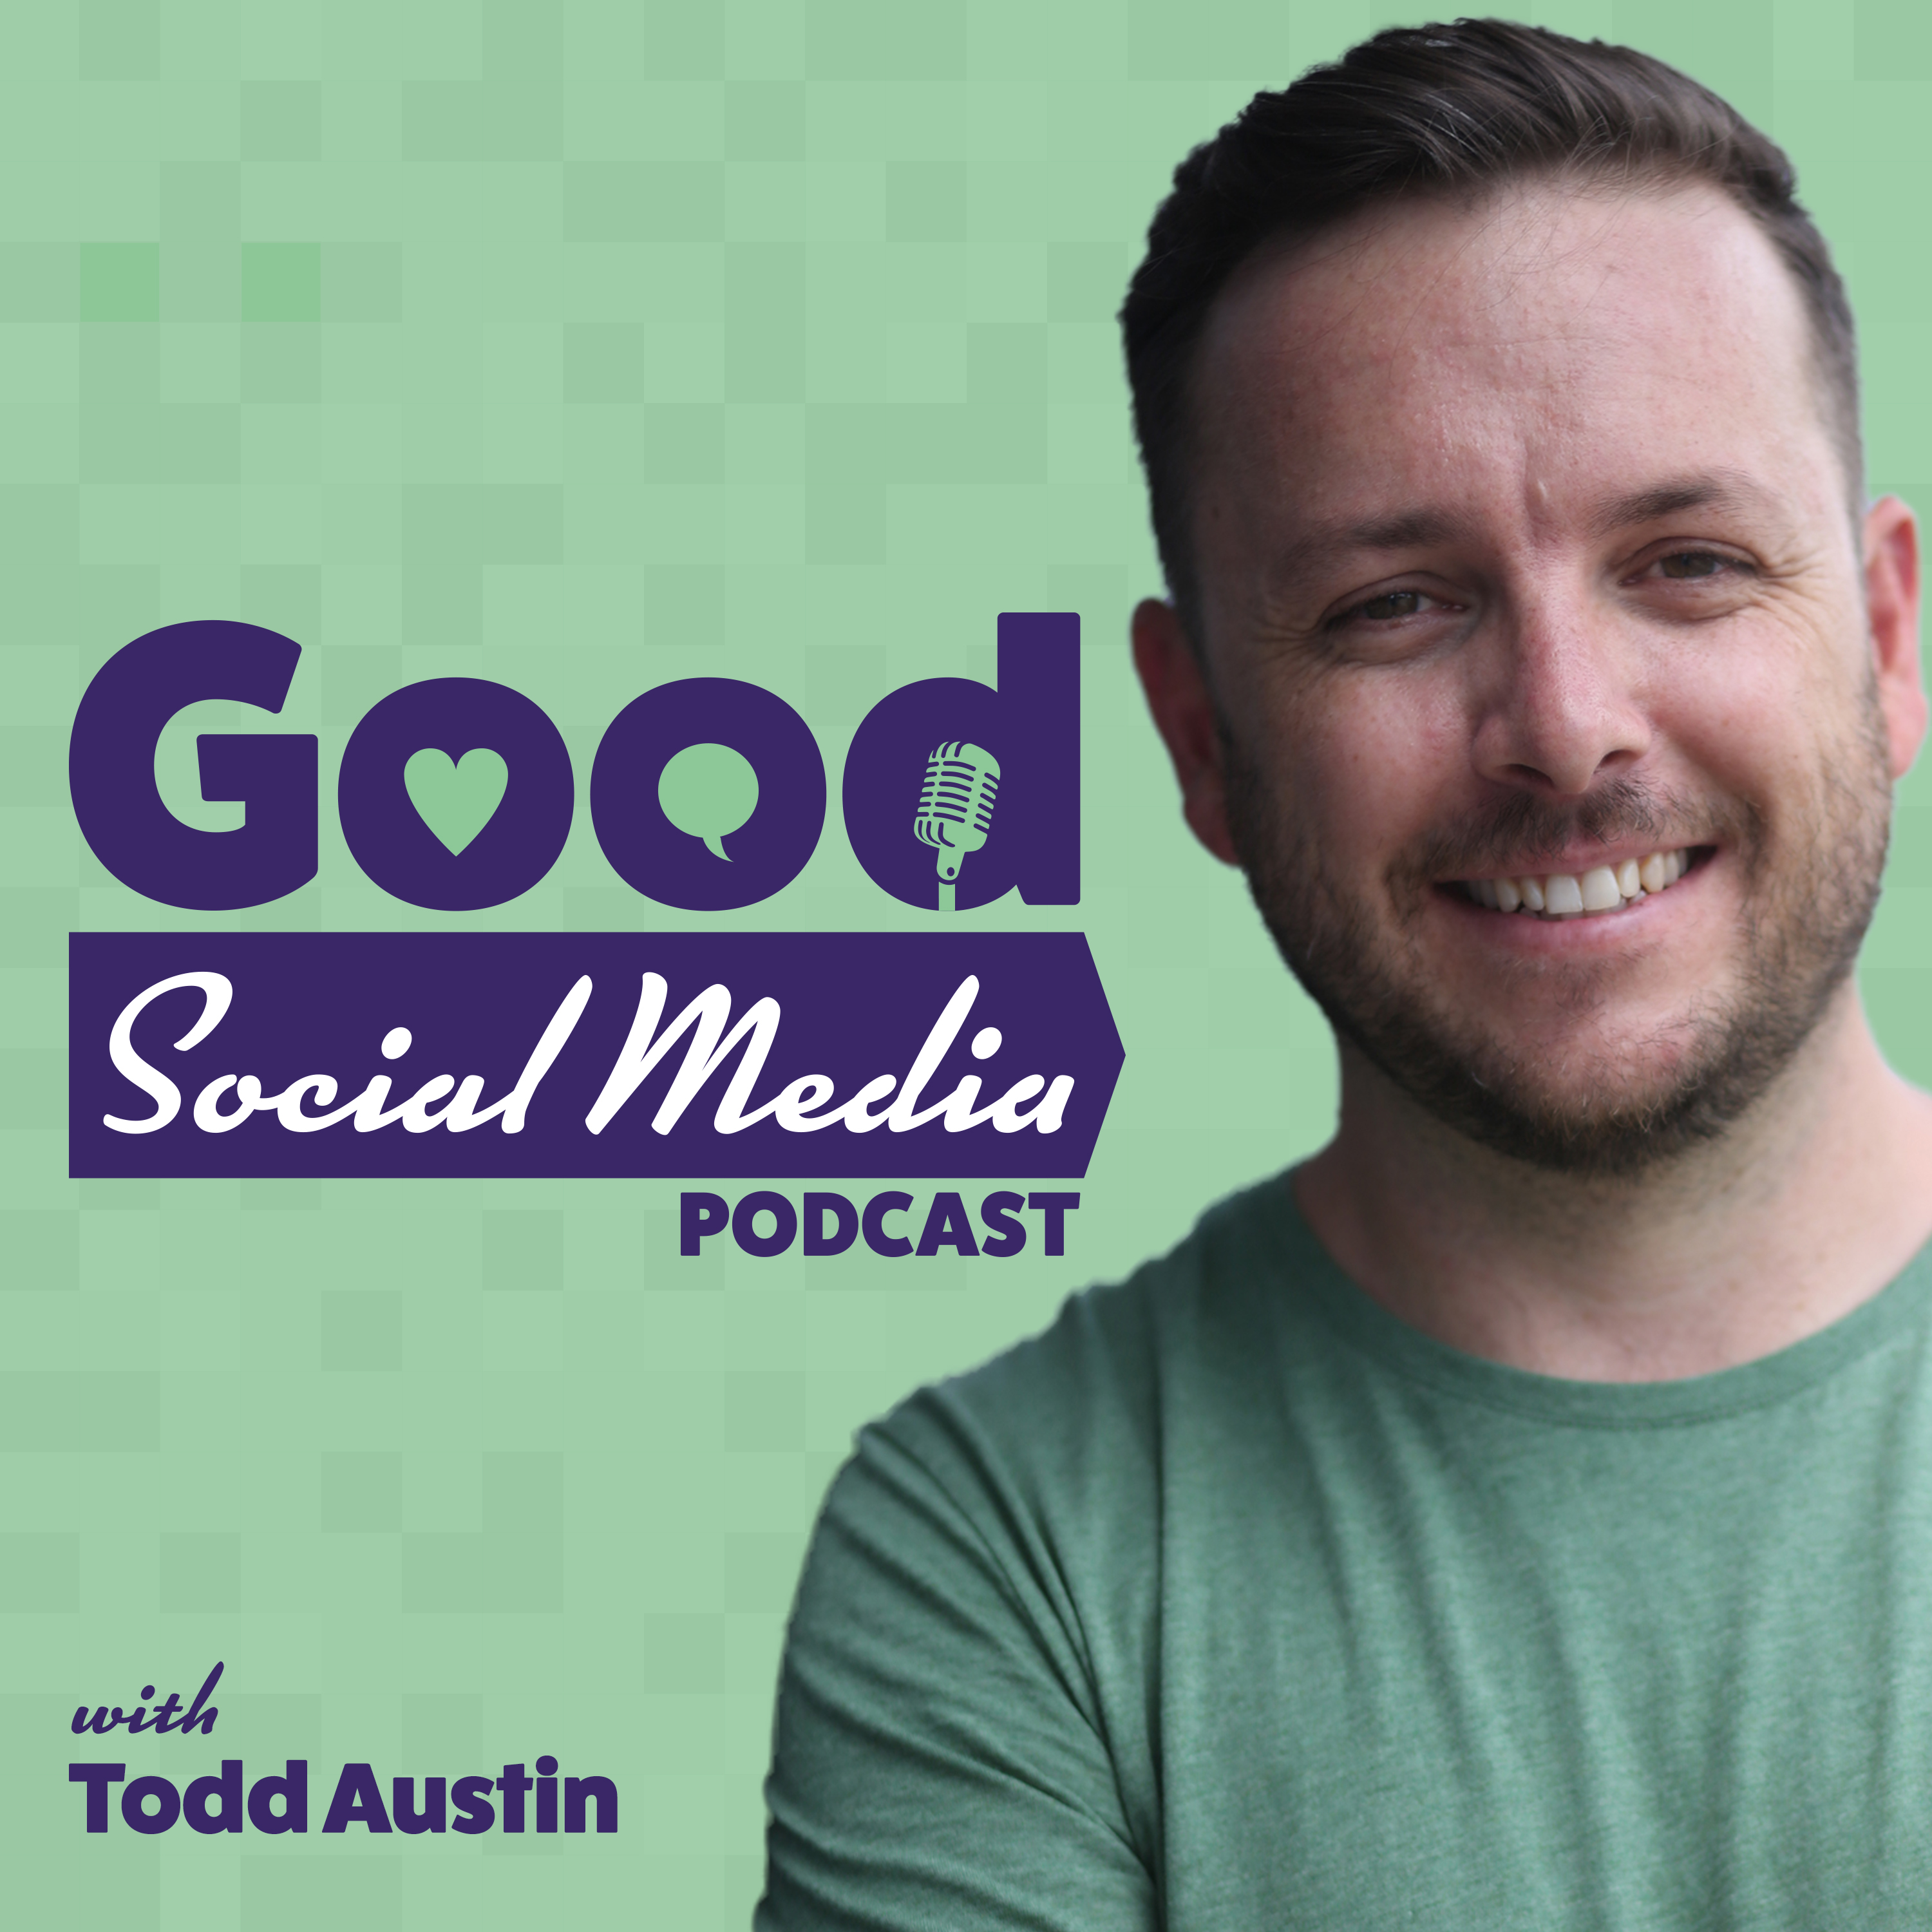 Good Social Media Podcast show art